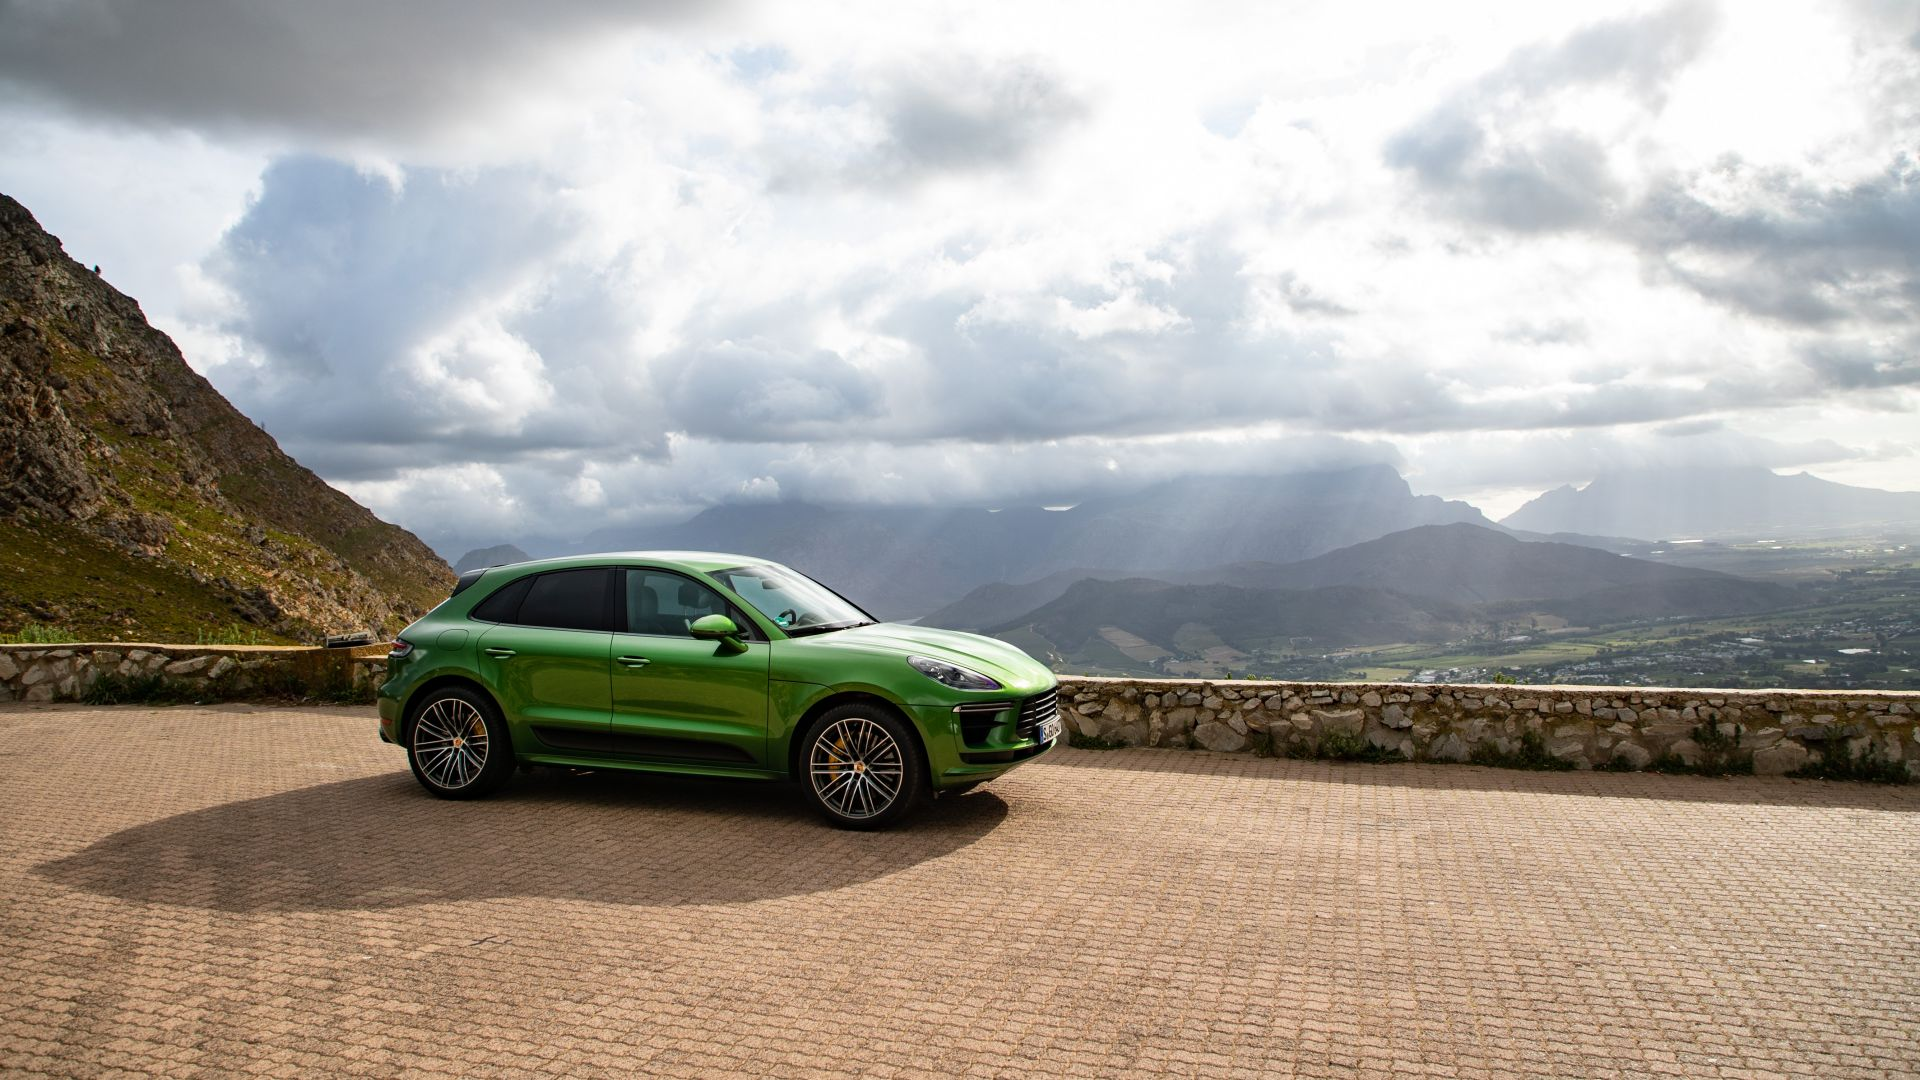 Porsche Macan Turbo, 2020 cars, SUV, crossover, 5K, Porsche Macan Turbo, 2020 cars, SUV, crossover, 5K (horizontal)